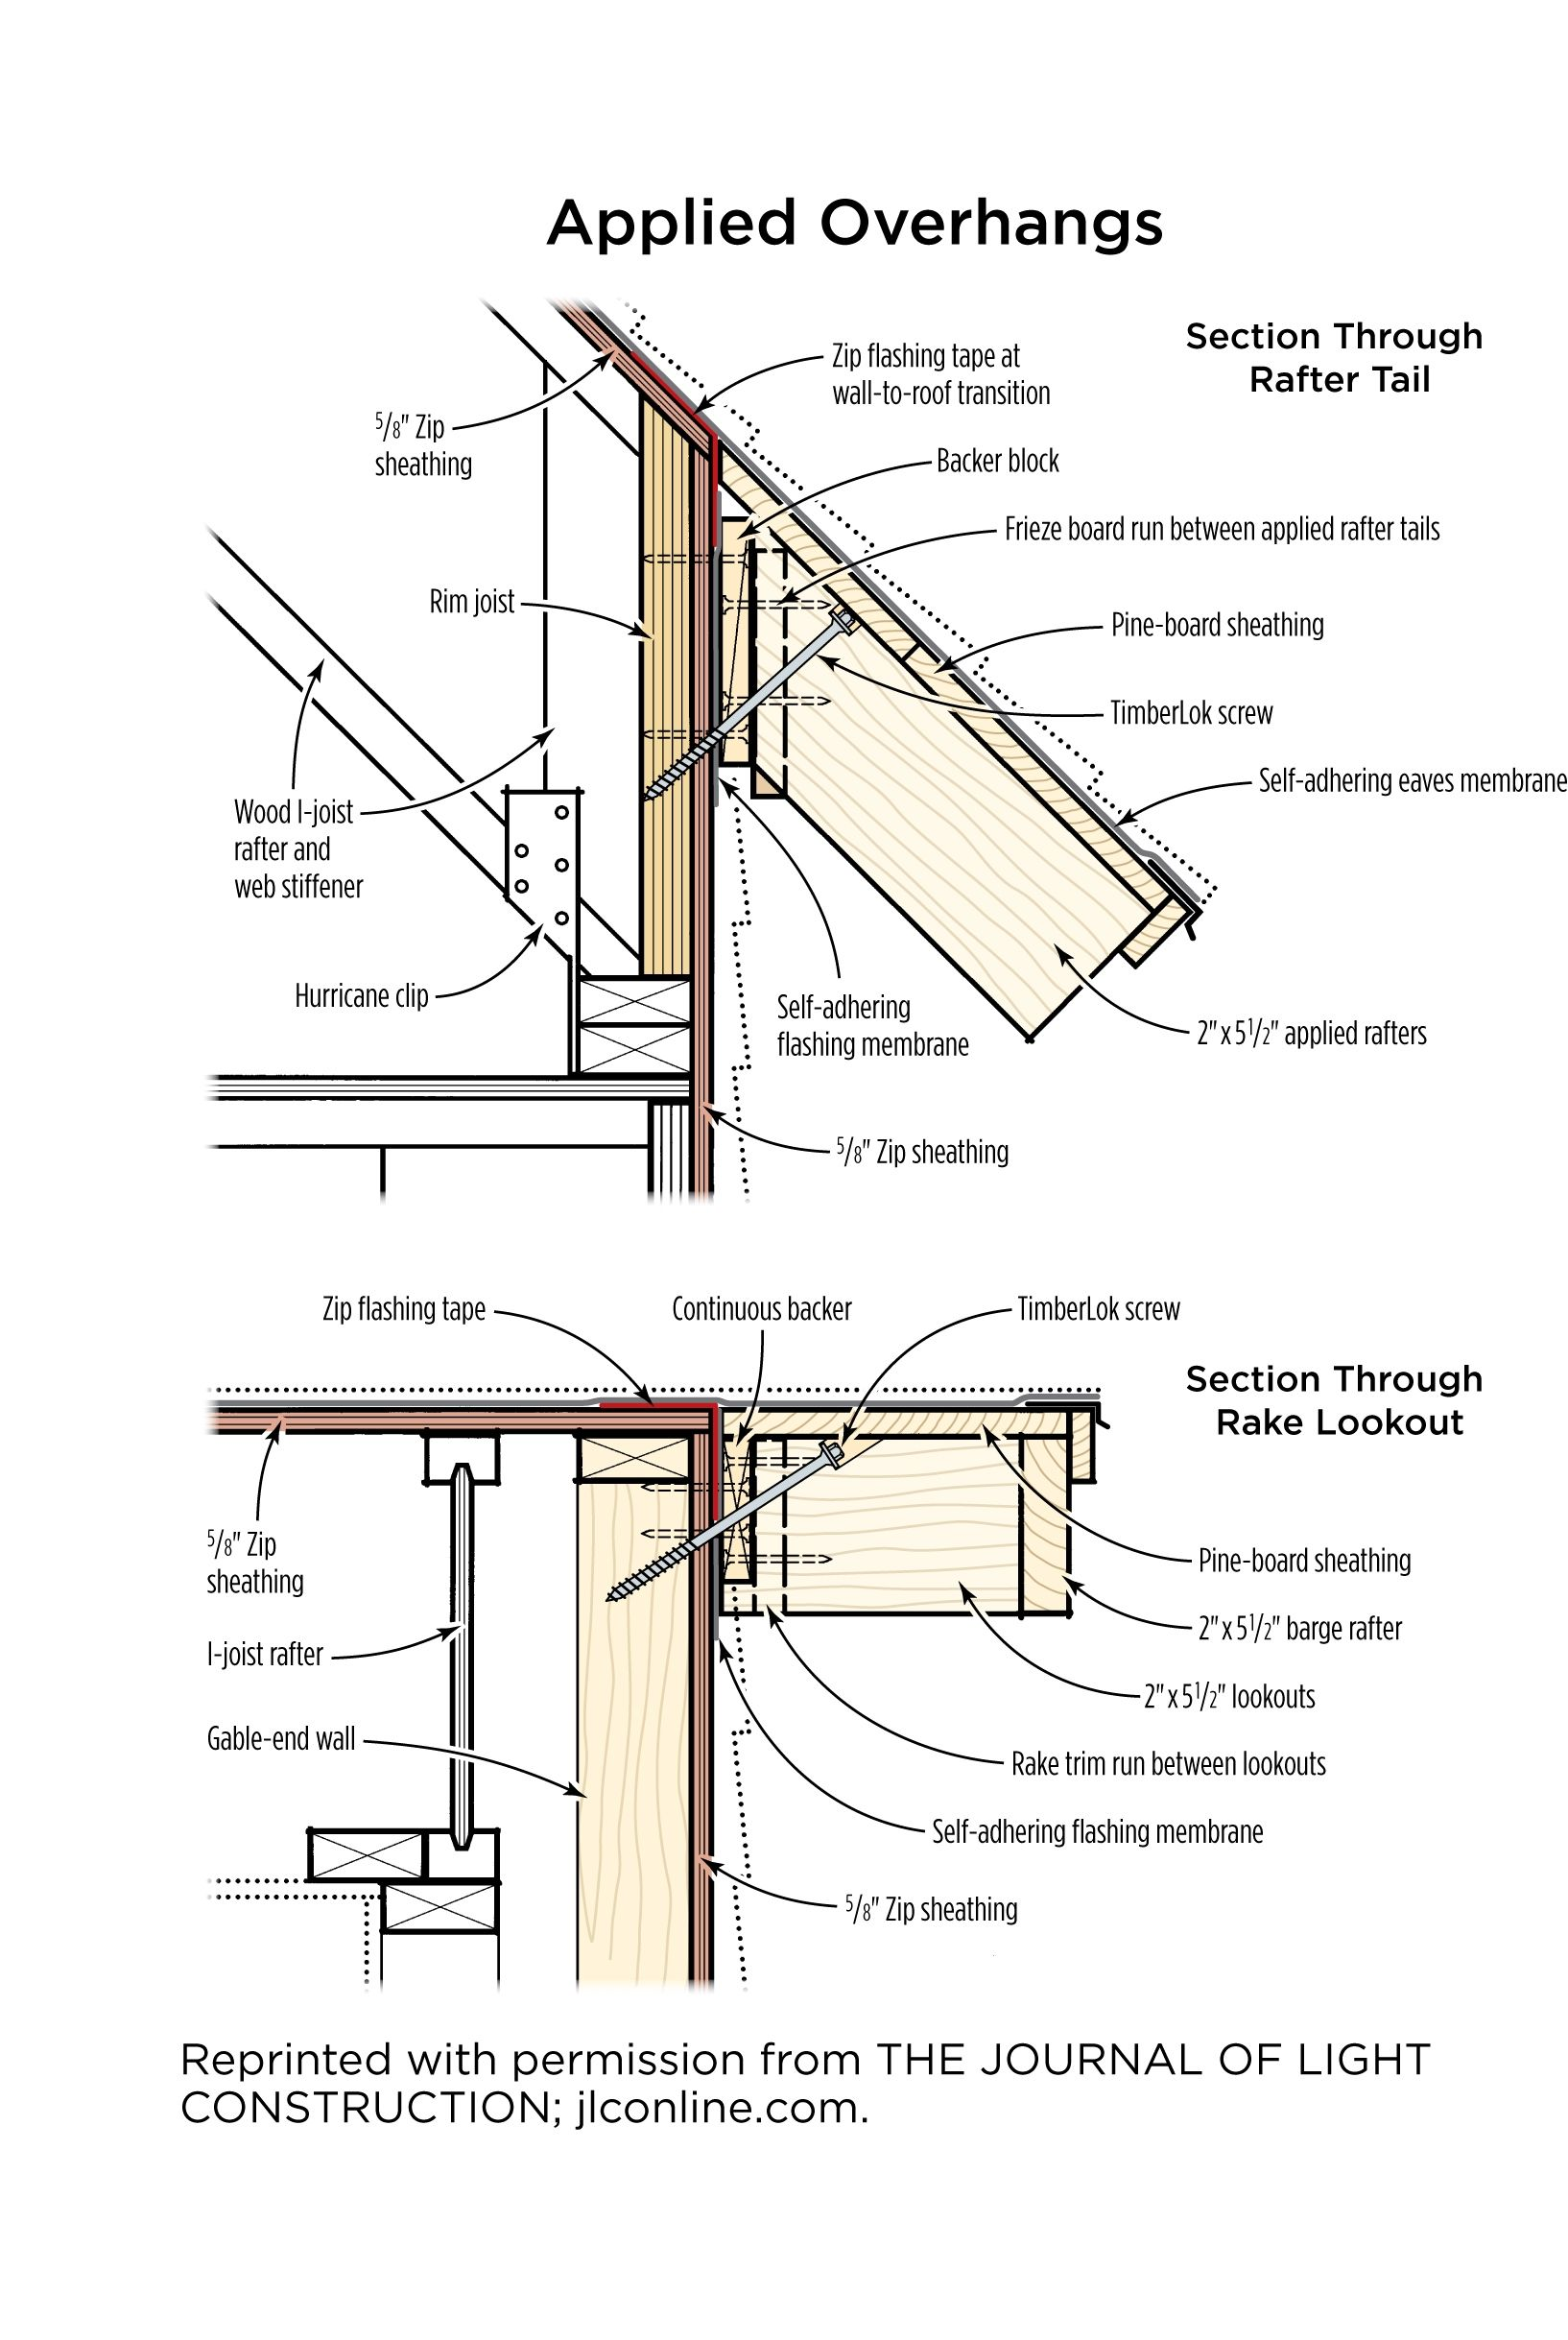 Gable Metal Roof Parts Diagram 2003 Ford F150 Stereo Wiring On Martha 39s Vineyard John Abrams Used Zip System Osb To